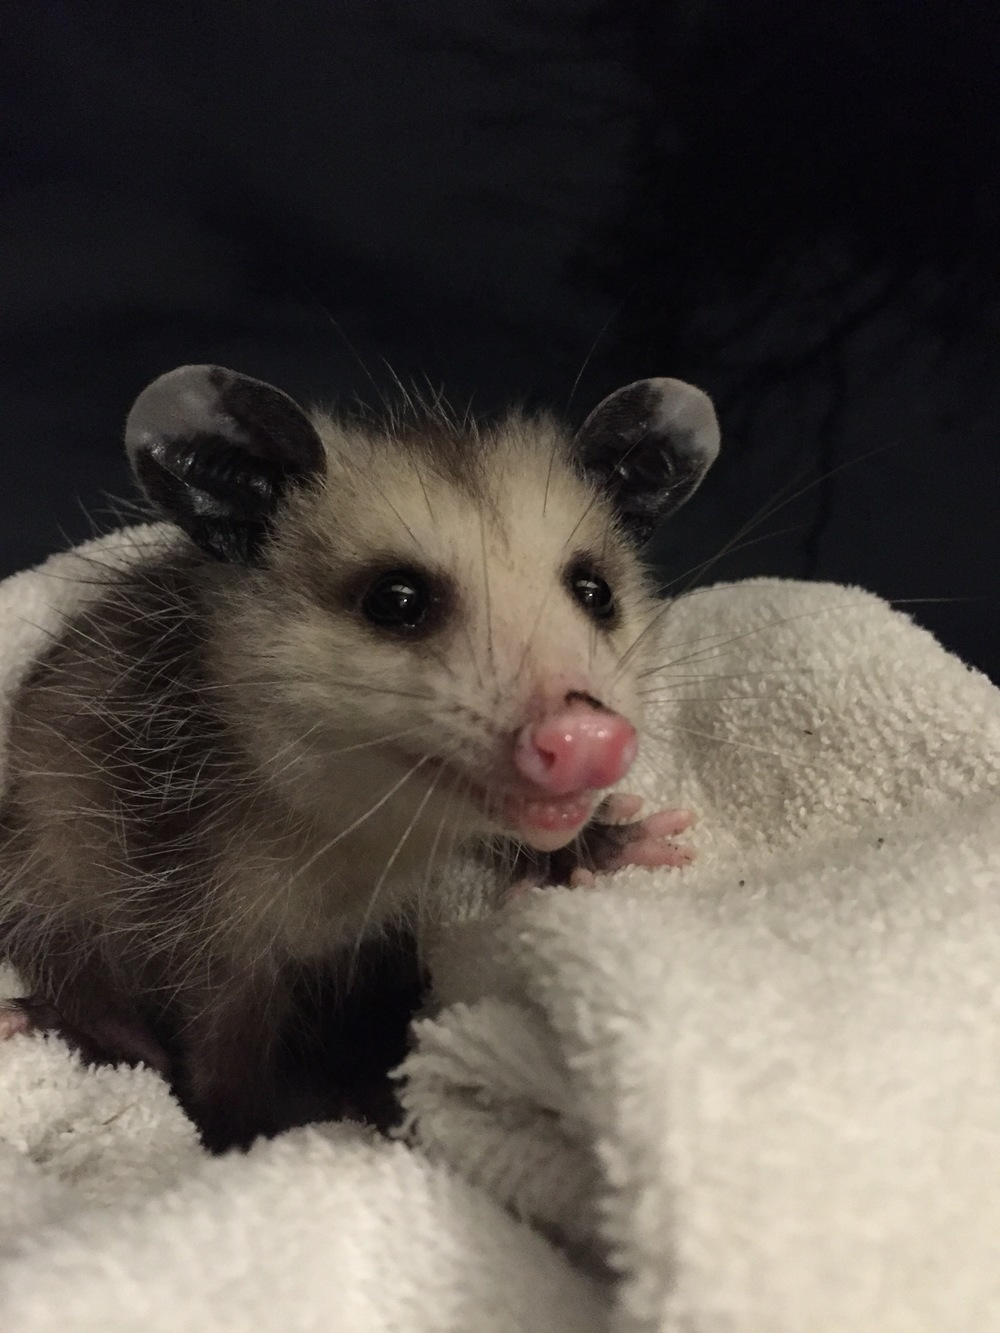 This Handsome Juvenile Opossum Stopped By Our Patio Last Night. After A  Checkup And Warmup It Was Sent On Its Way. It Appeared To Be Completely  Healthy And ...